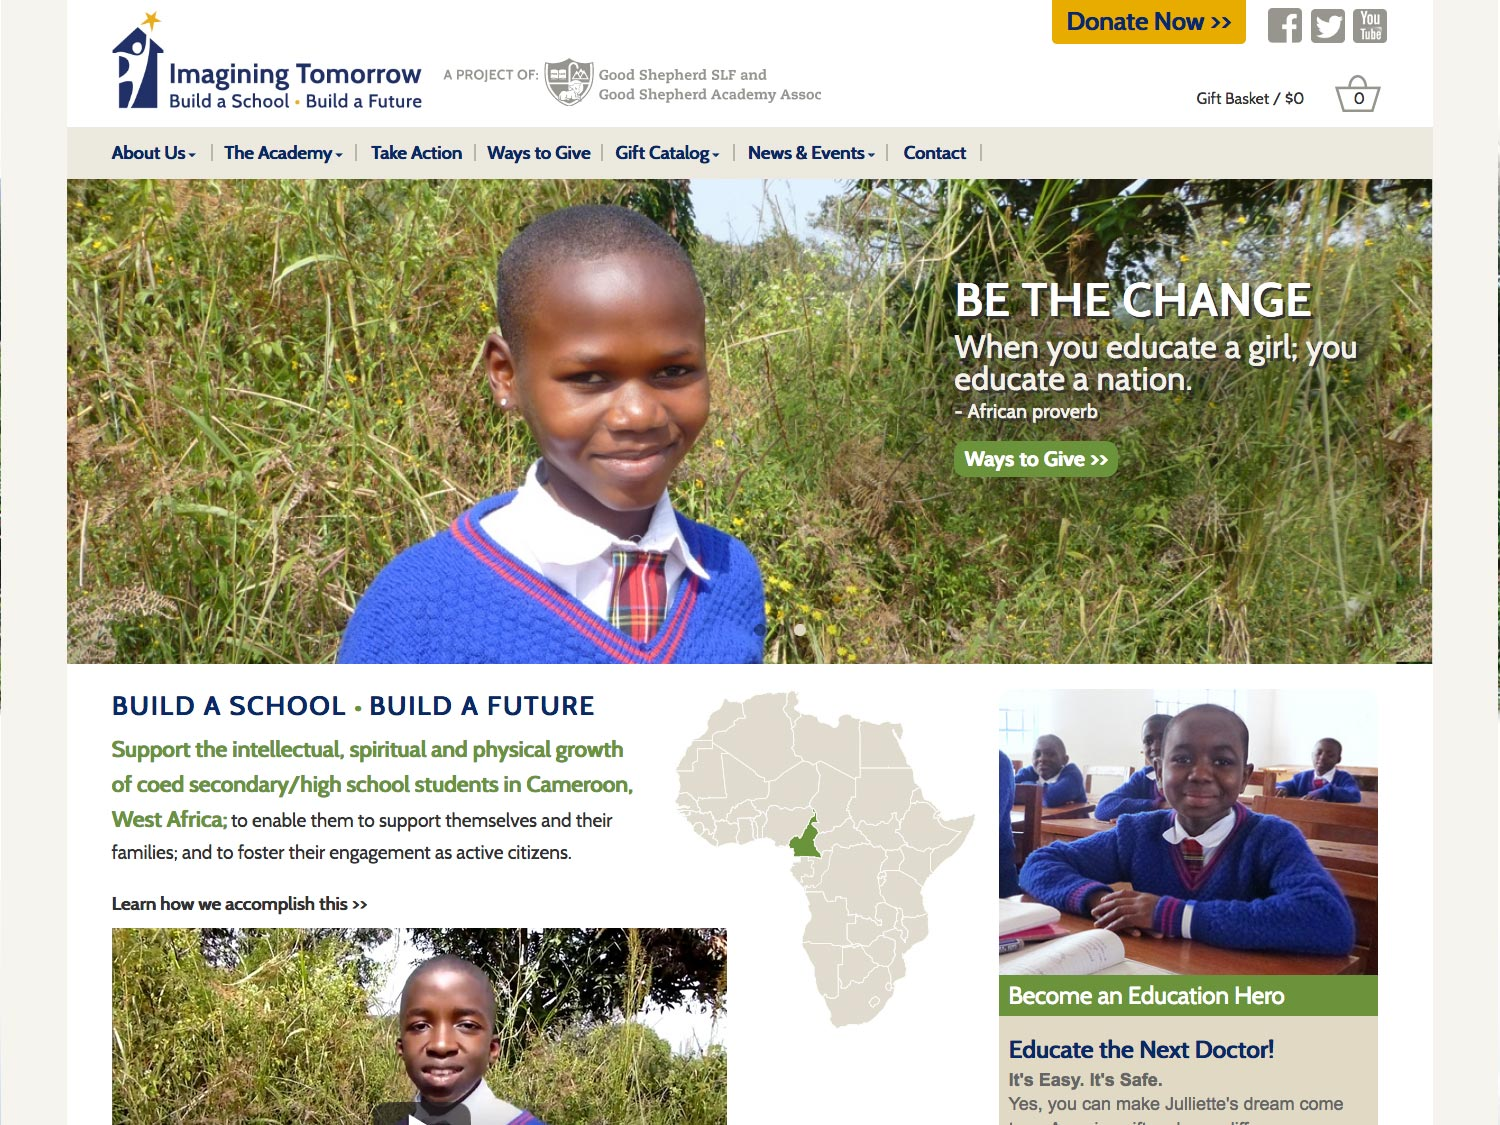 Homepage for building a future for Cameroonian students